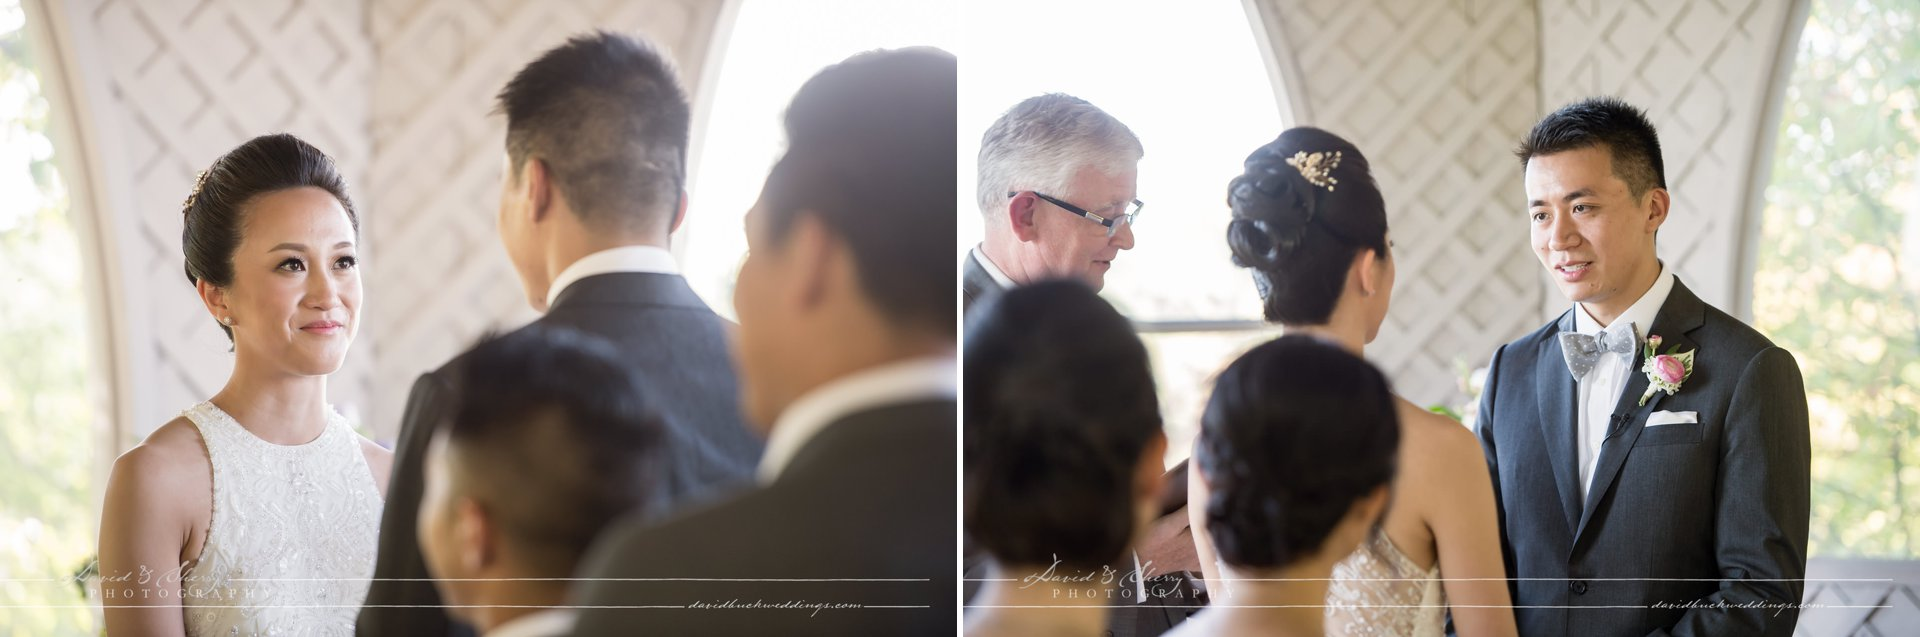 waterstone-estate-wedding-david-sherry-photography-simon-crystal-020